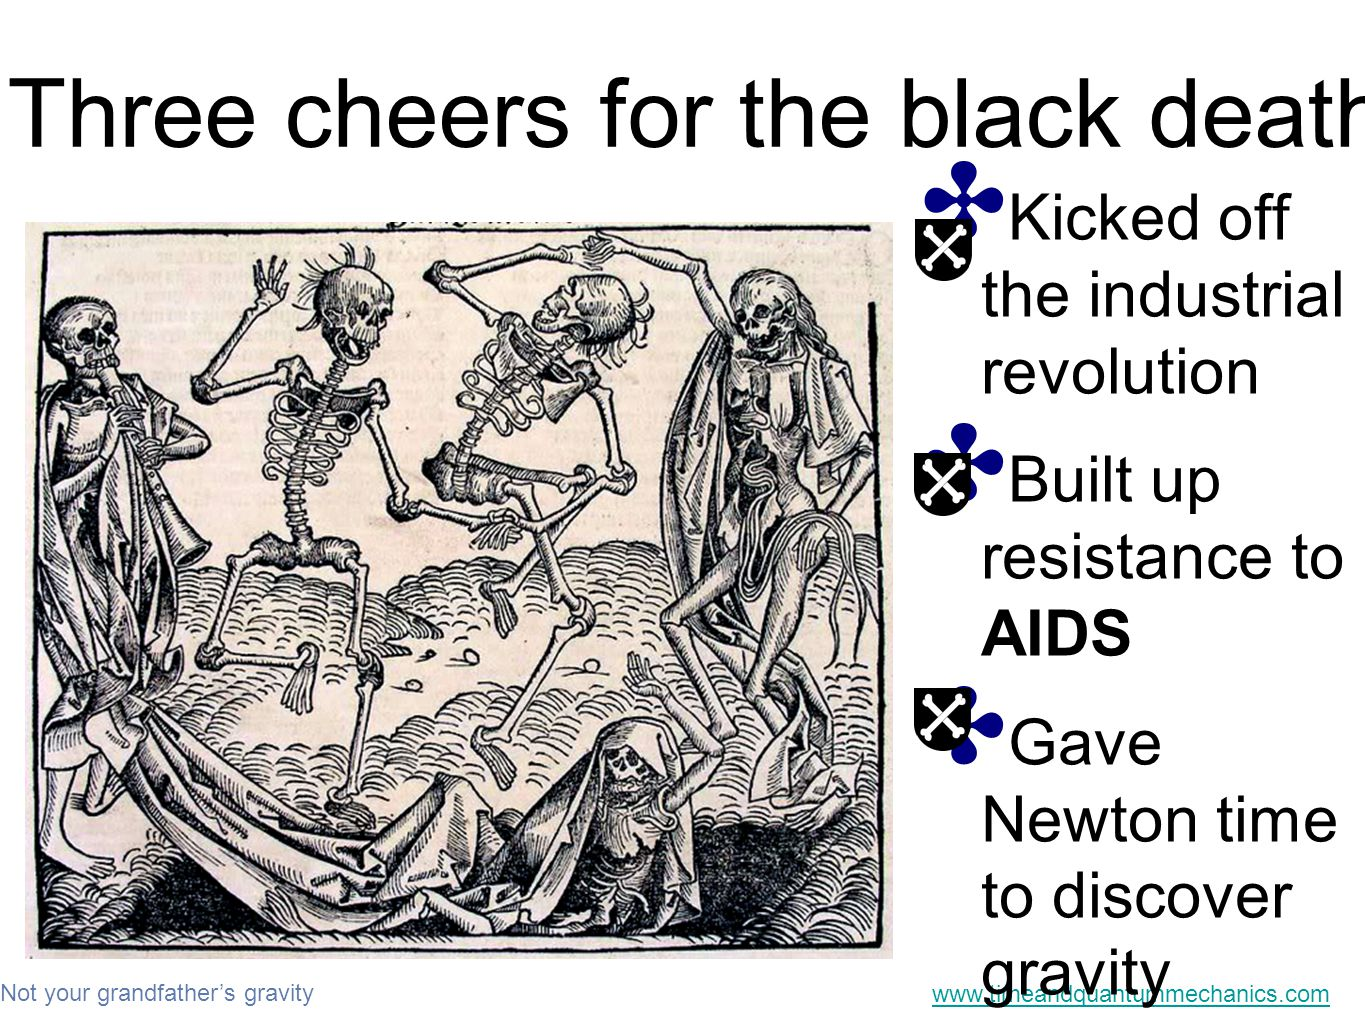 Not your grandfather's gravity www.timeandquantummechanics.com Three cheers for the black death ✤ Kicked off the industrial revolution ✤ Built up resistance to AIDS ✤ Gave Newton time to discover gravity